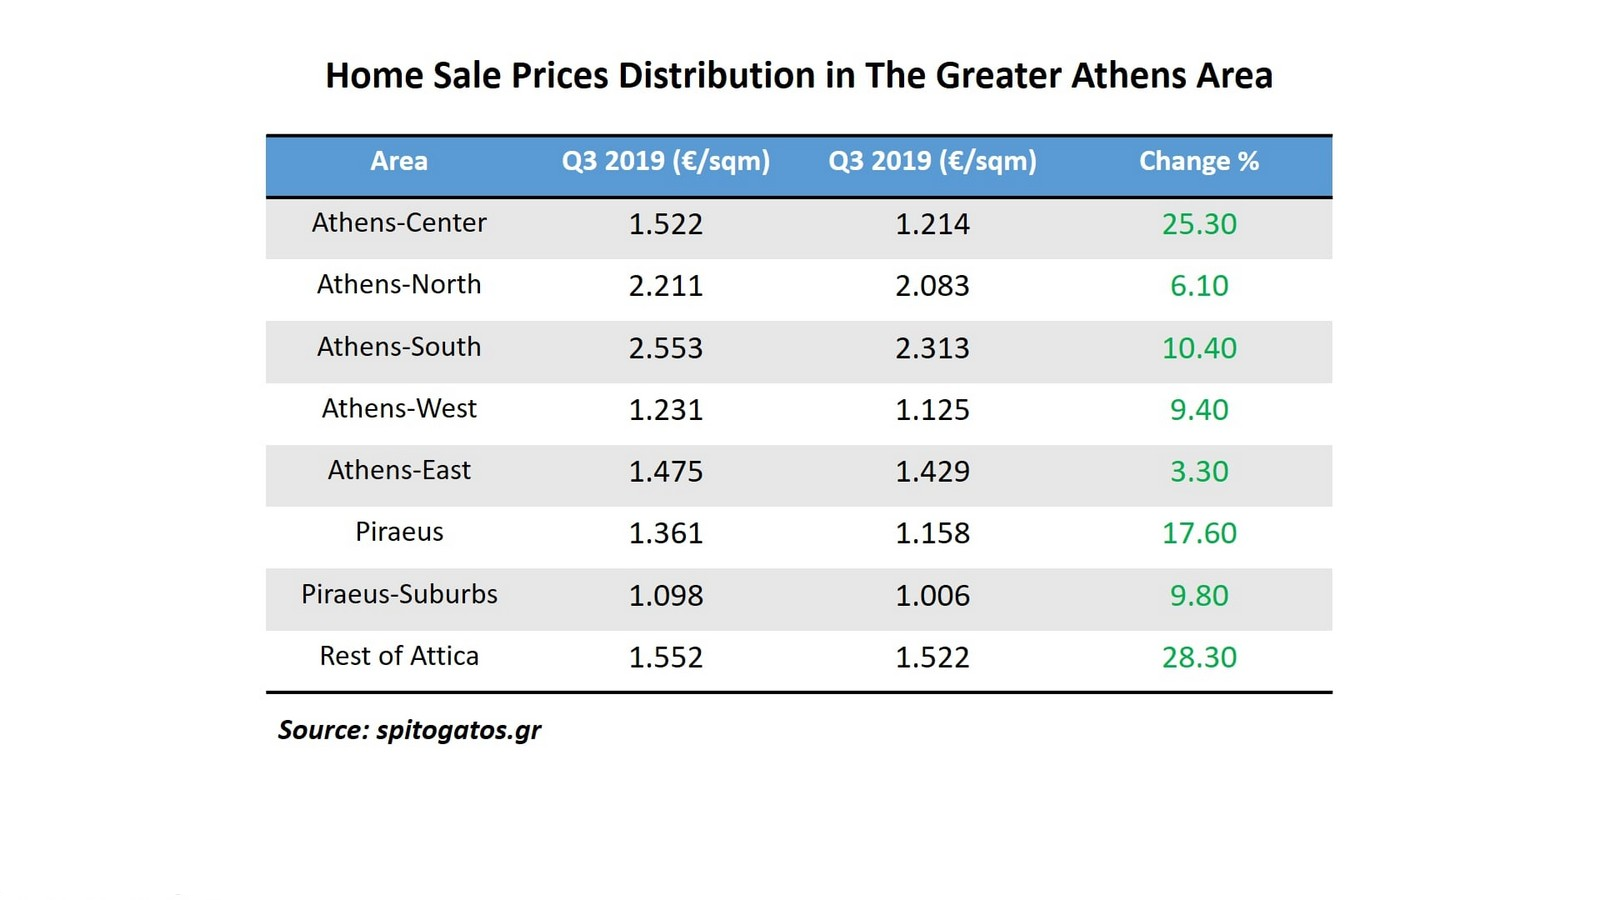 Home Sale Prices Distribution in The Greater Athens Area